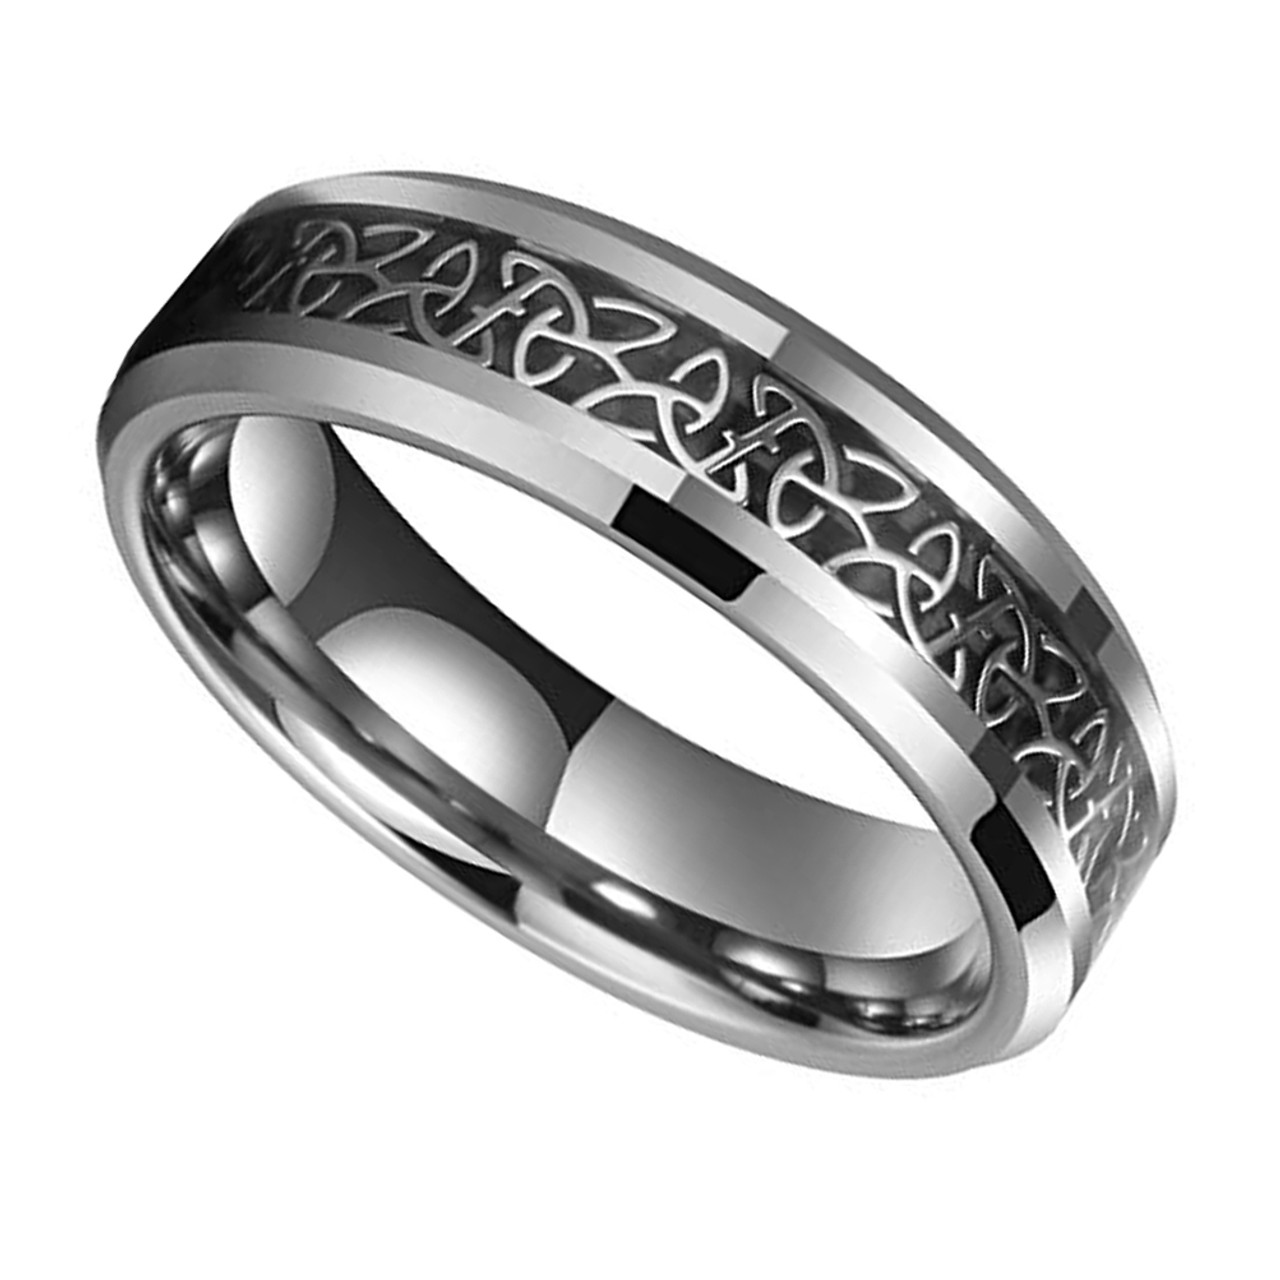 (6mm) Unisex or Women s Tungsten Carbide Wedding Ring Band. Silver Celtic Knot  Ring 61b3b5287